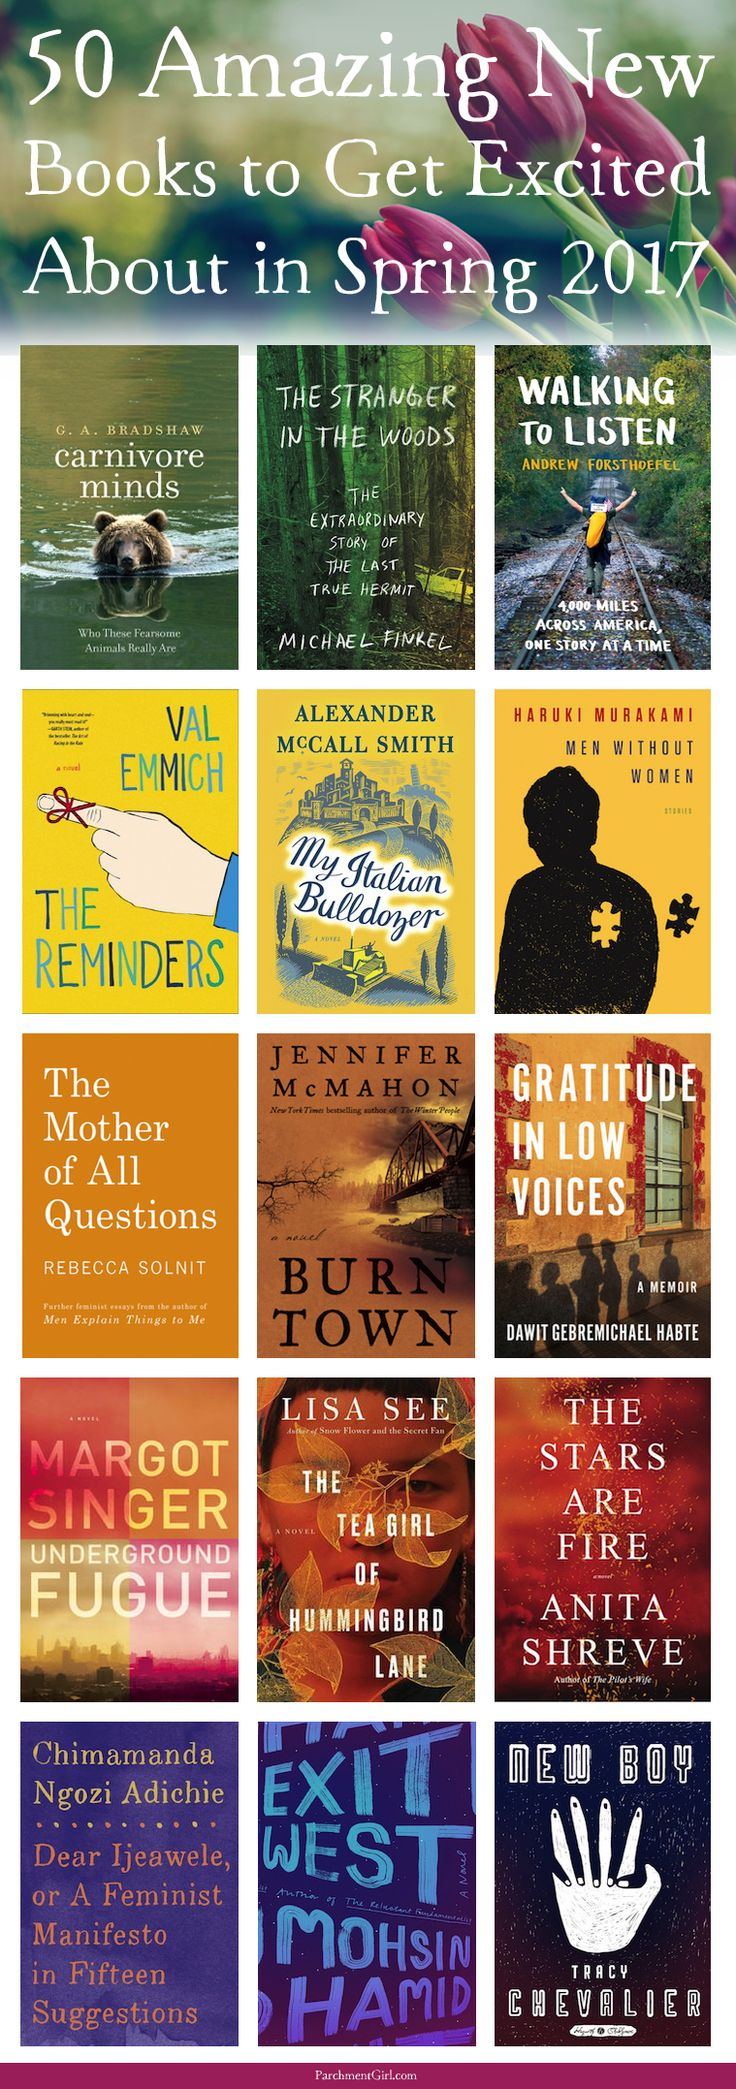 53 Amazing New Books to Look Forward to This Spring by Joan Didion, David McCullough, Lisa See, Anita Shreve, Elizabeth Strout, Paula Hawkins, Chimamanda Ngozi Adichie, + more! via @ParchmentGirl